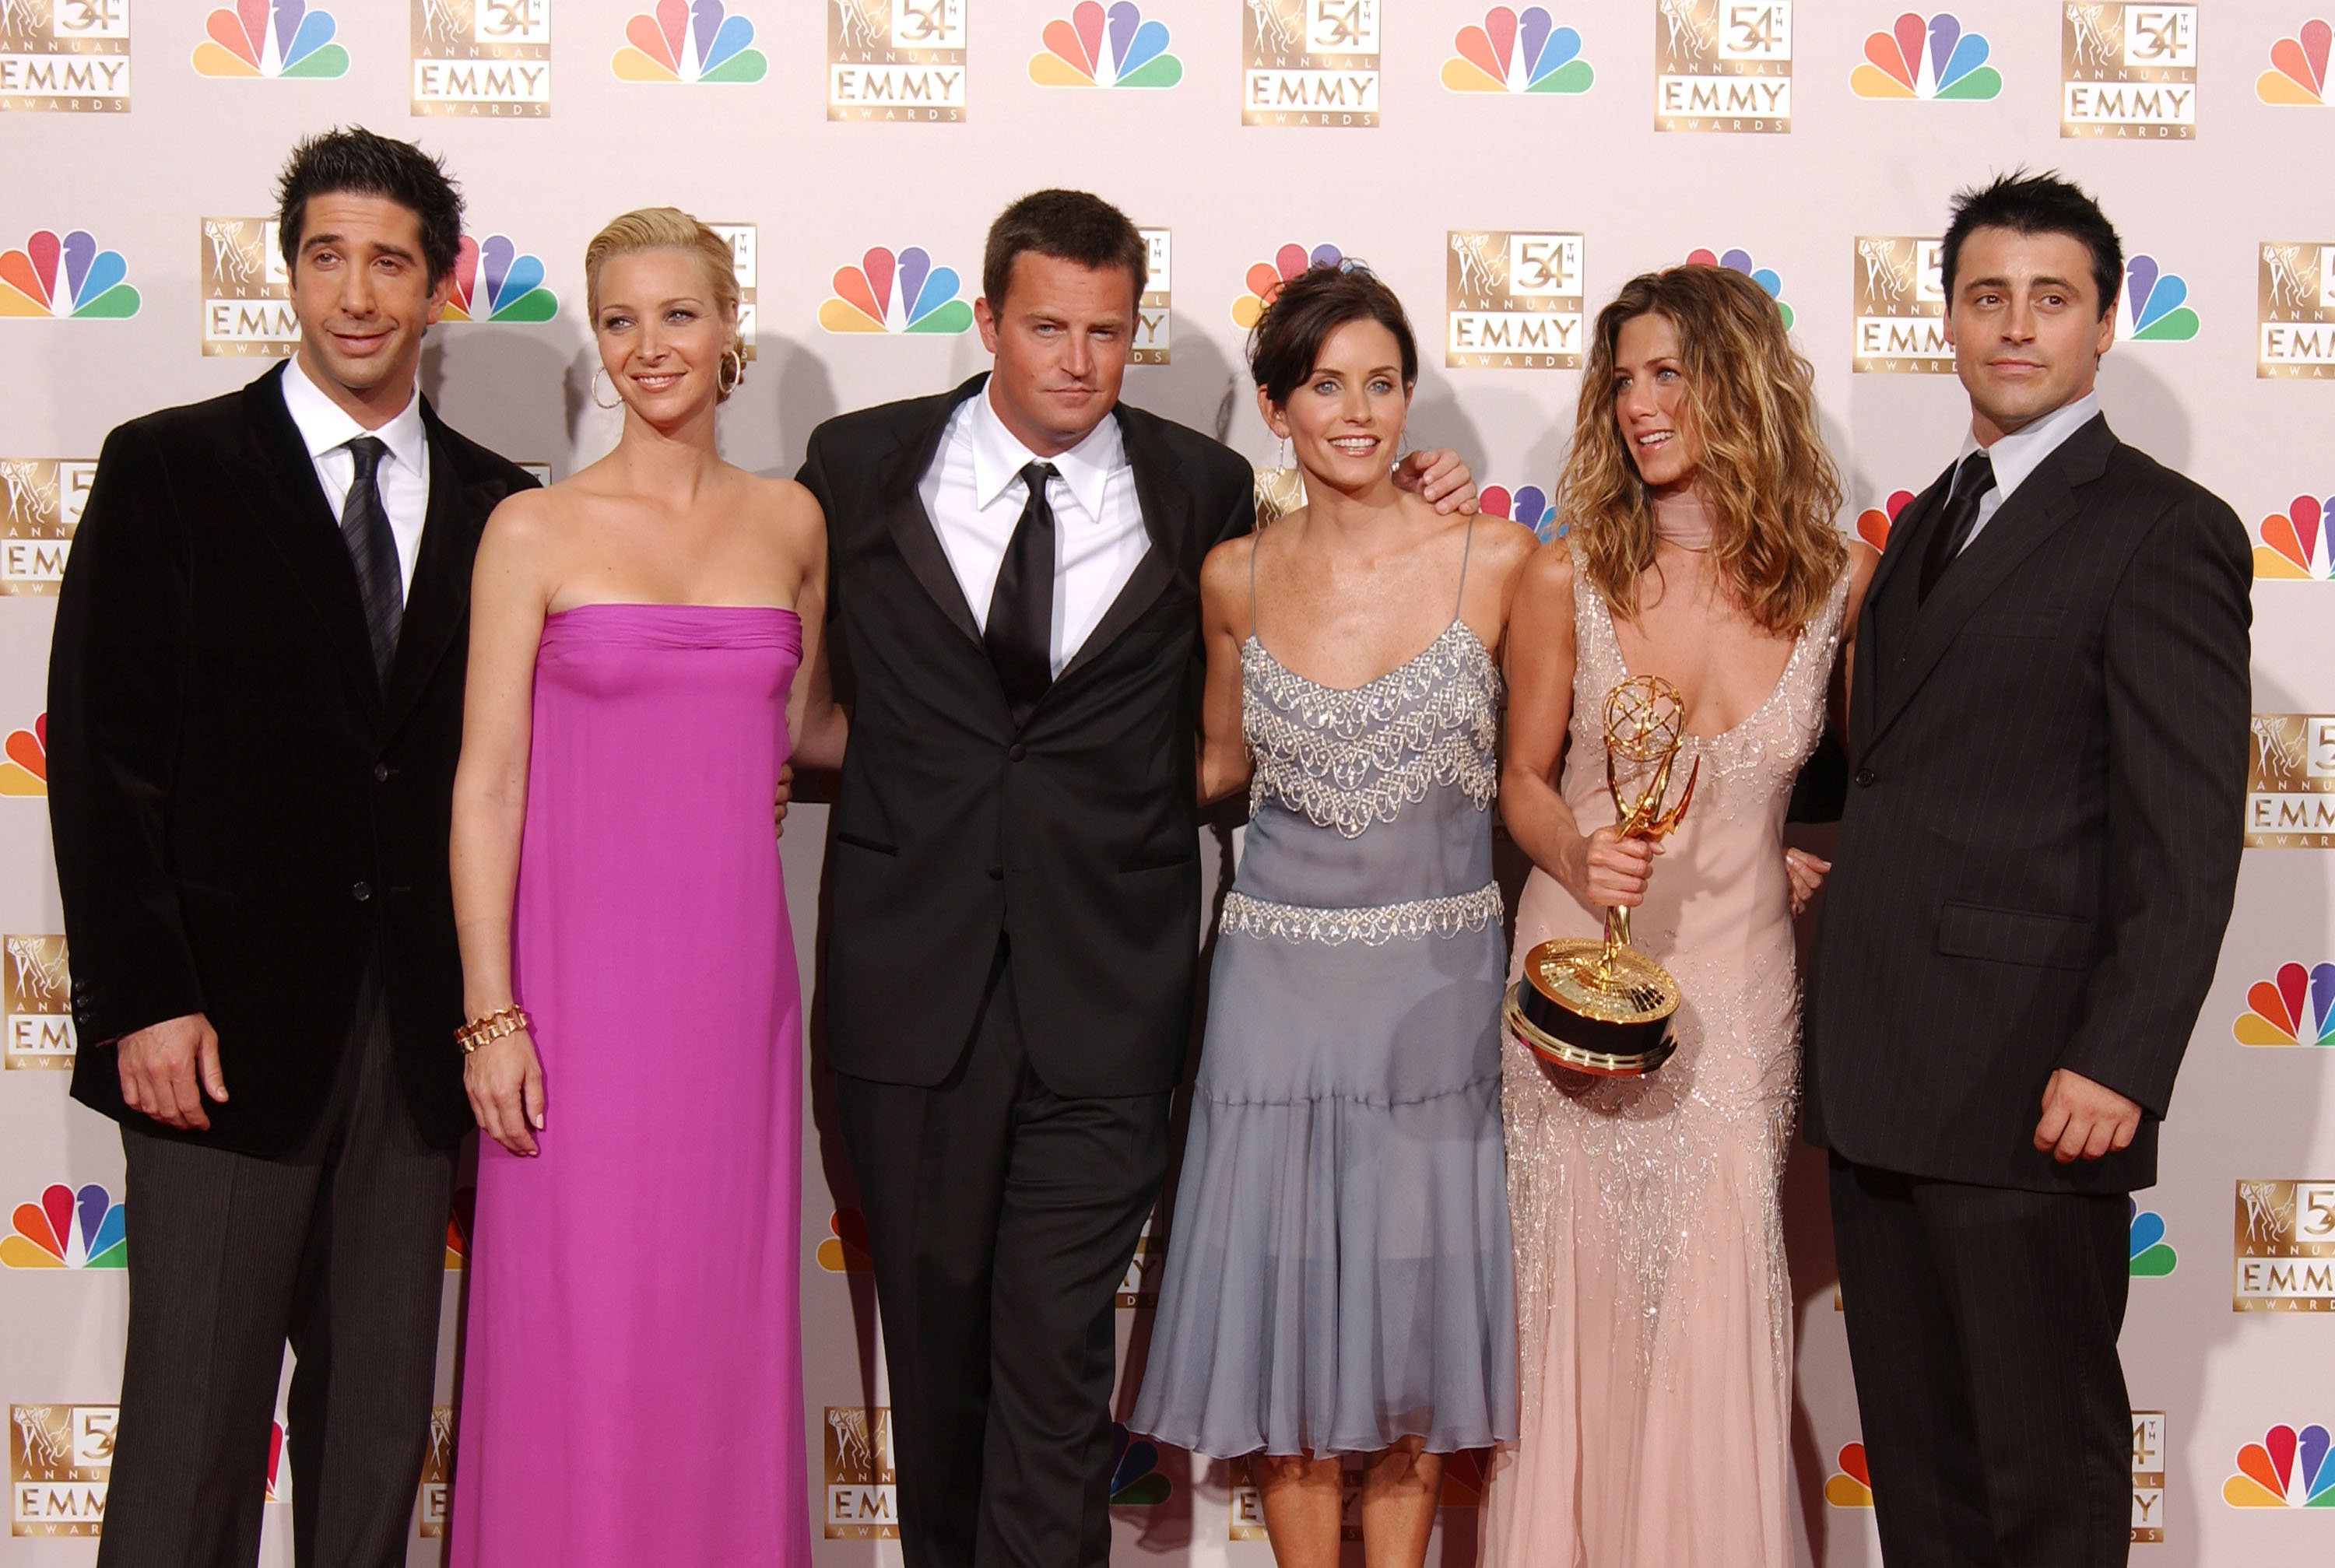 (L to R) Actors David Schwimmer, Lisa Kudrow, Matthew Perry, Courteney Cox Arquette, Jennifer Aniston and Matt LeBlanc pose backstage during the 54th Annual Primetime Emmy Awards at the Shrine Auditorium on September 22, 2002 in Los Angeles, California. Aniston won Outstanding Lead Actress in a Comedy Series for 'Friends.'